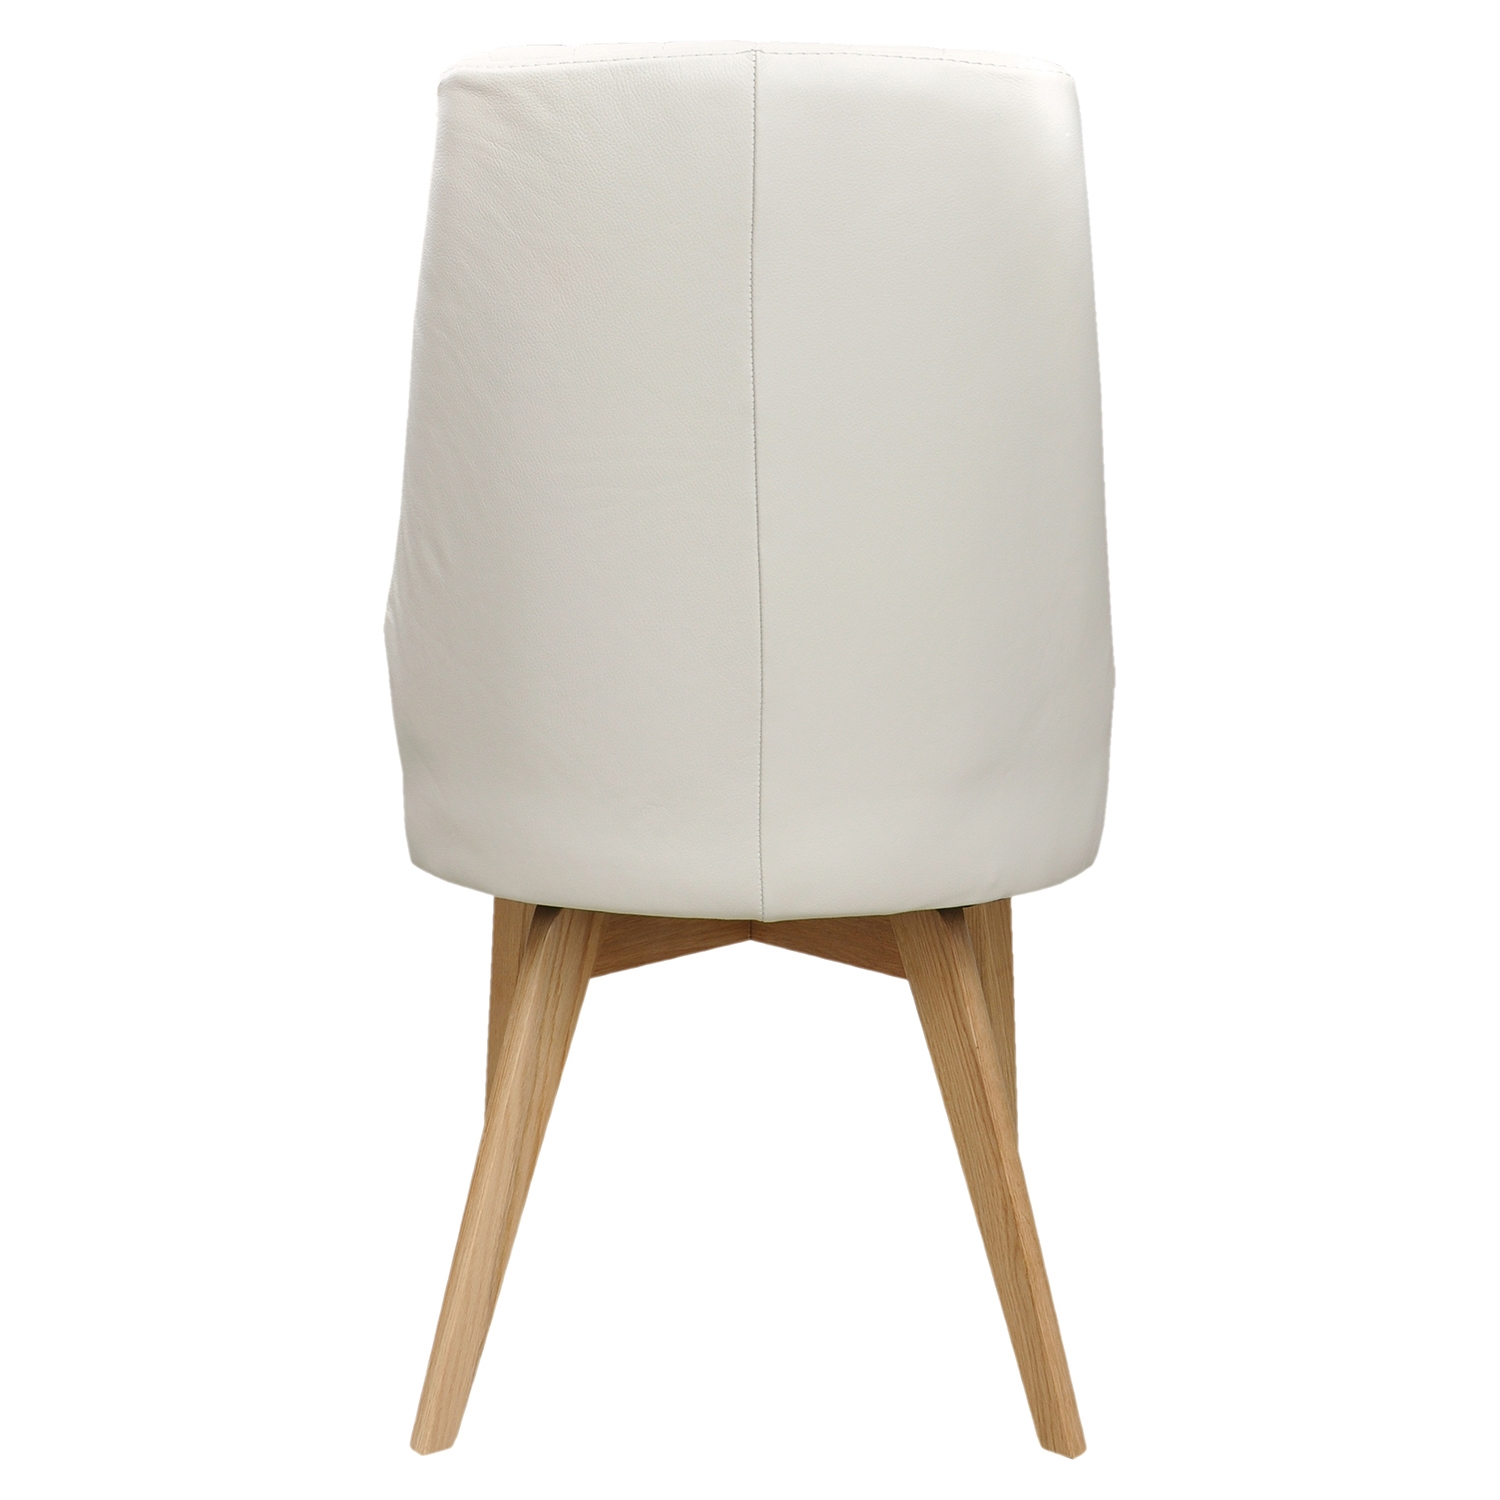 Nadine Leather Side Chair - White (Set of 2) - MOES-GO-1001-18